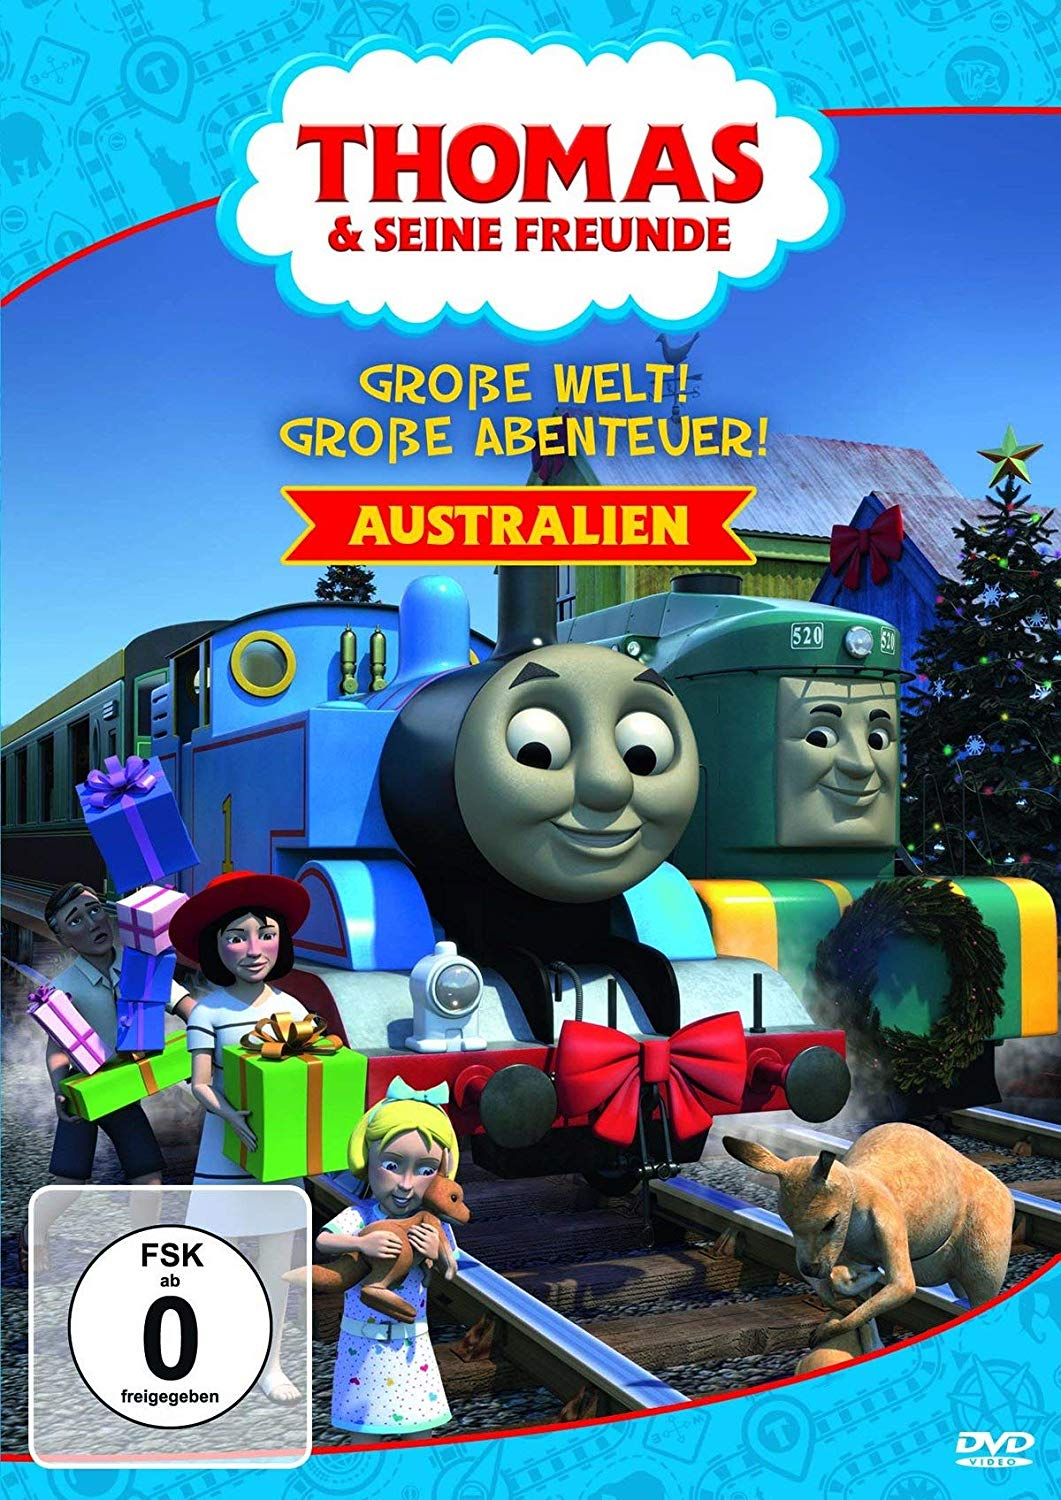 Big World! Big Adventures! - Australia (German DVD/CD)